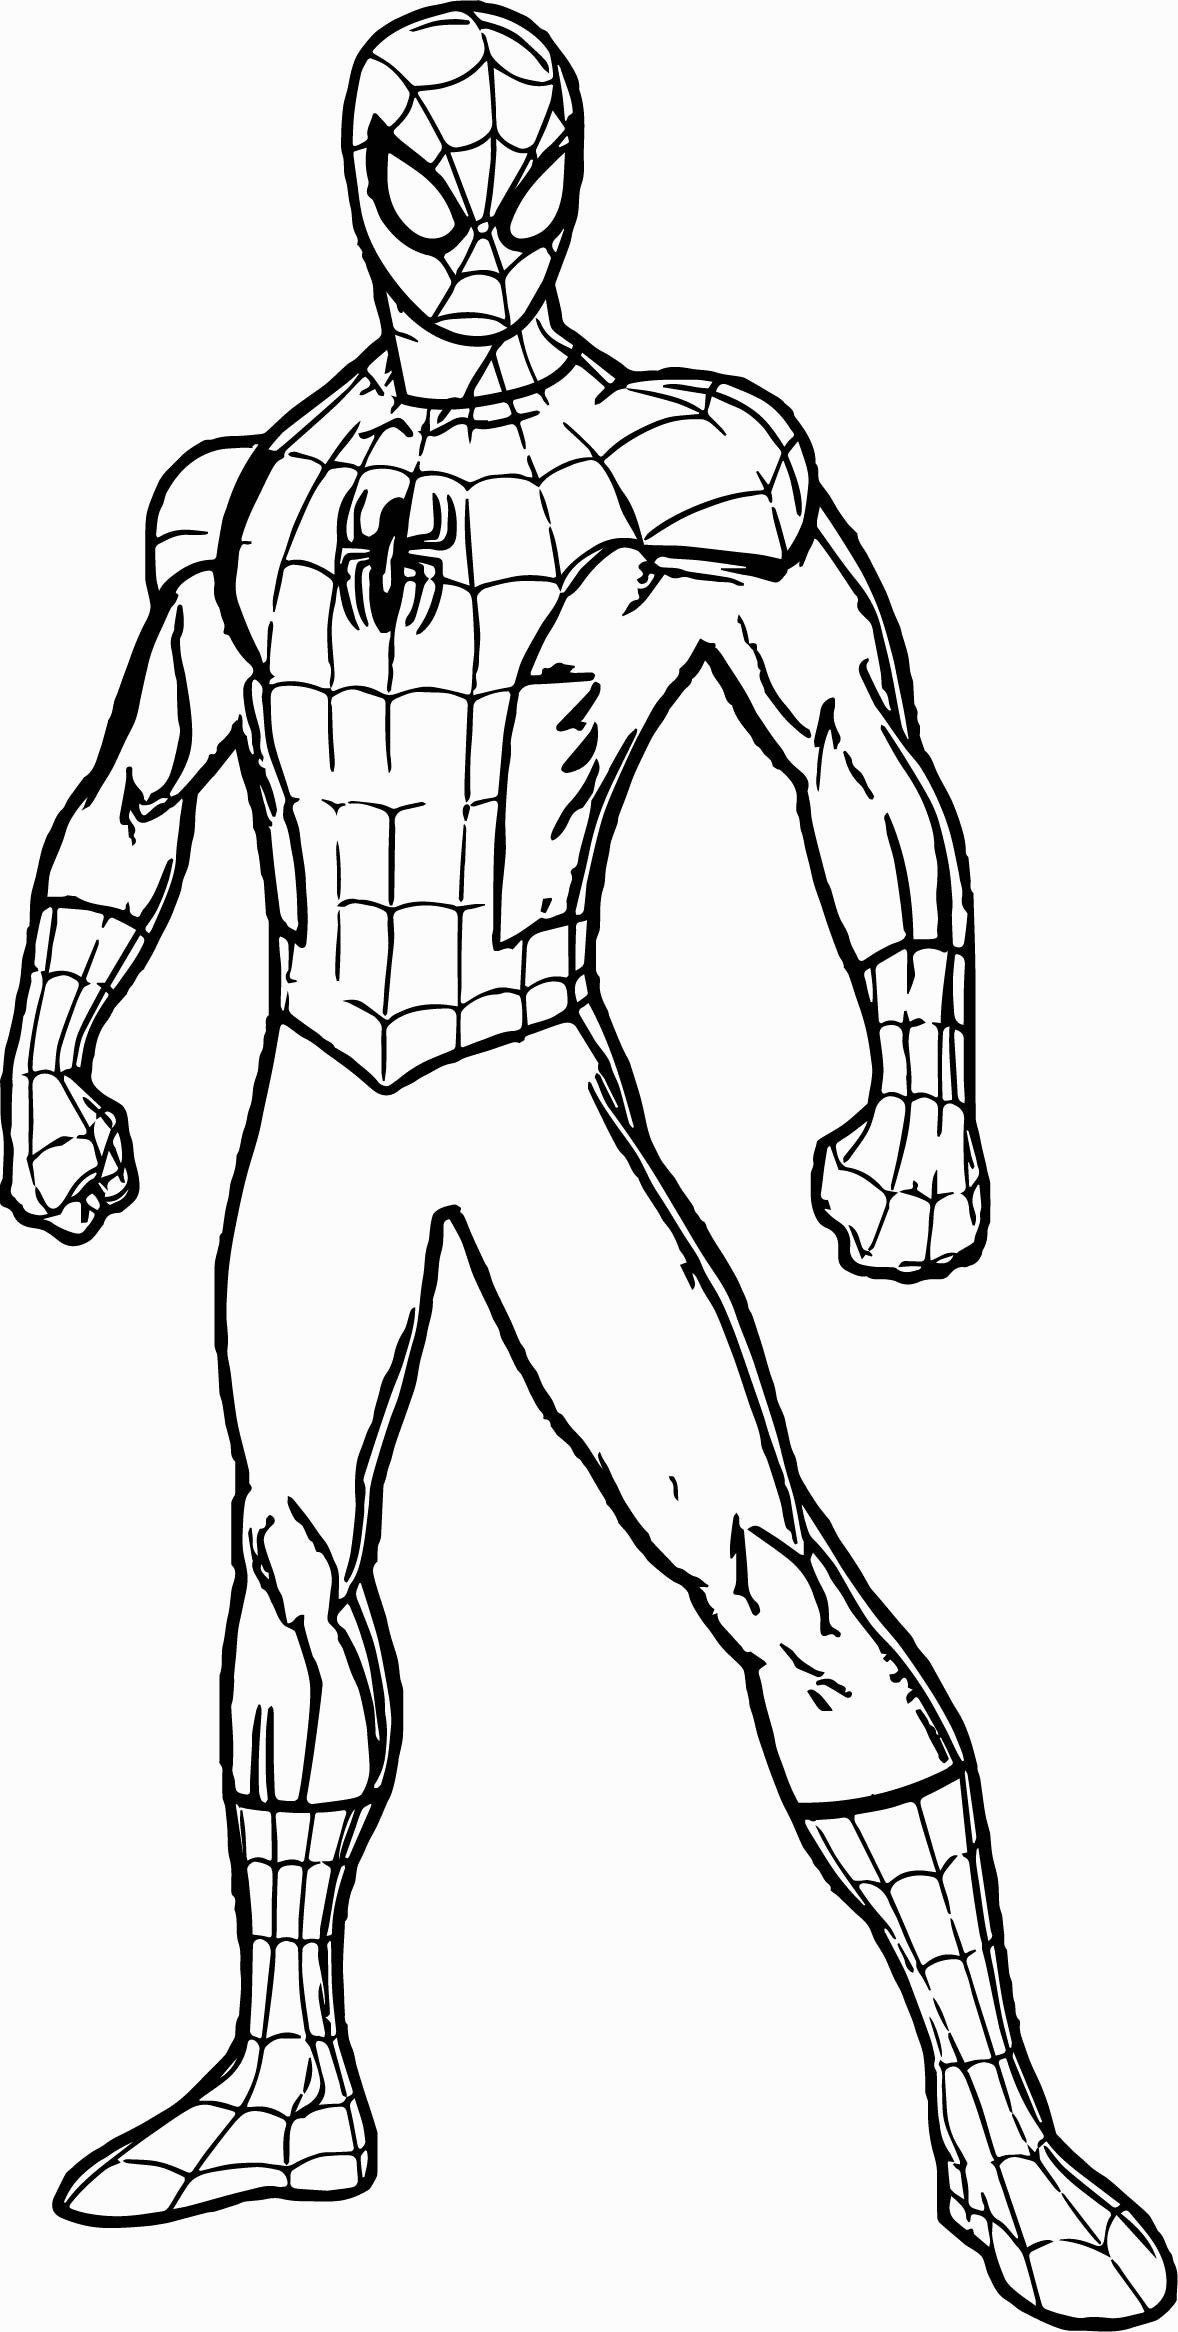 Thanos And Spiderman Coloring Pages For Kids Marvel Coloring Avengers Coloring Pages Hulk Coloring Pages